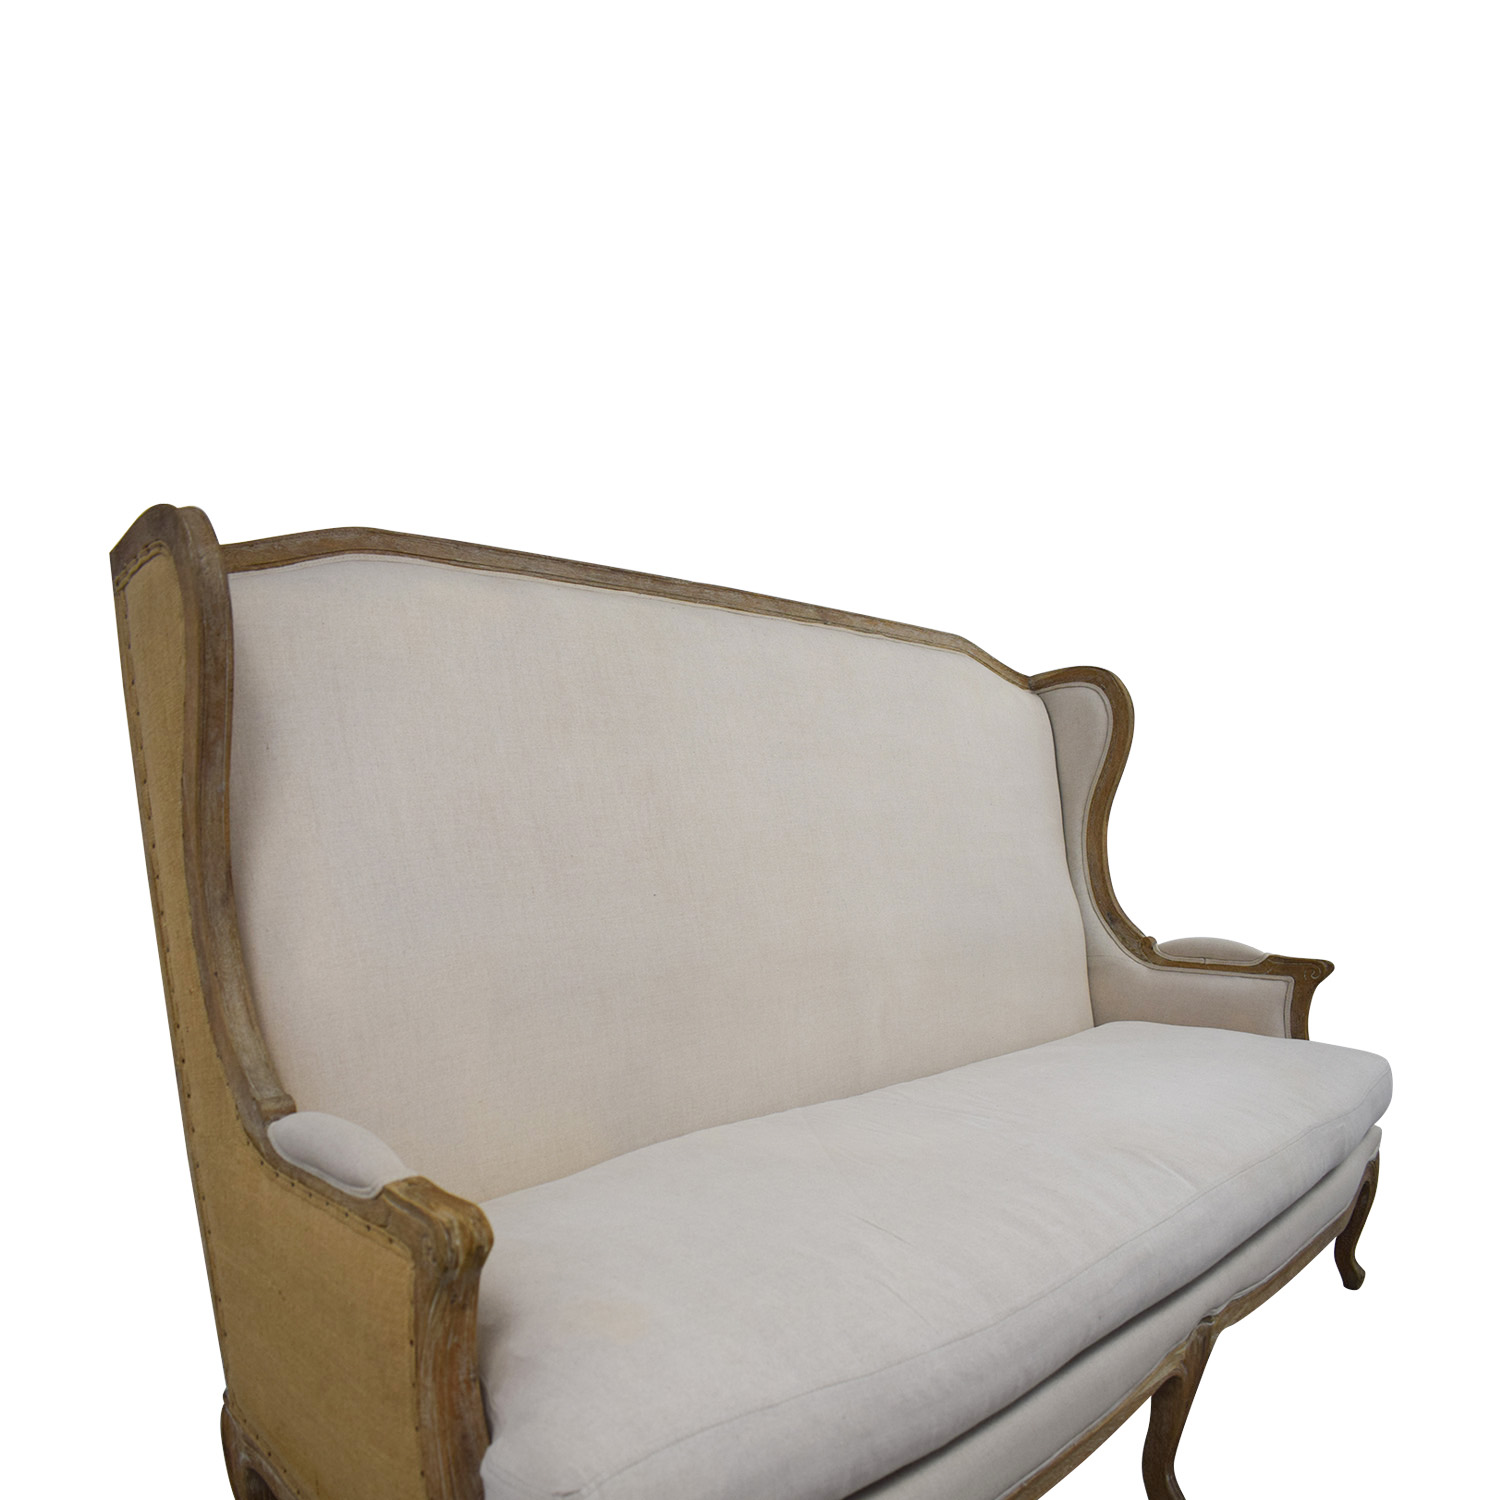 ABC Carpet & Home ABC Carpet & Home Beige Wingback Settee for sale